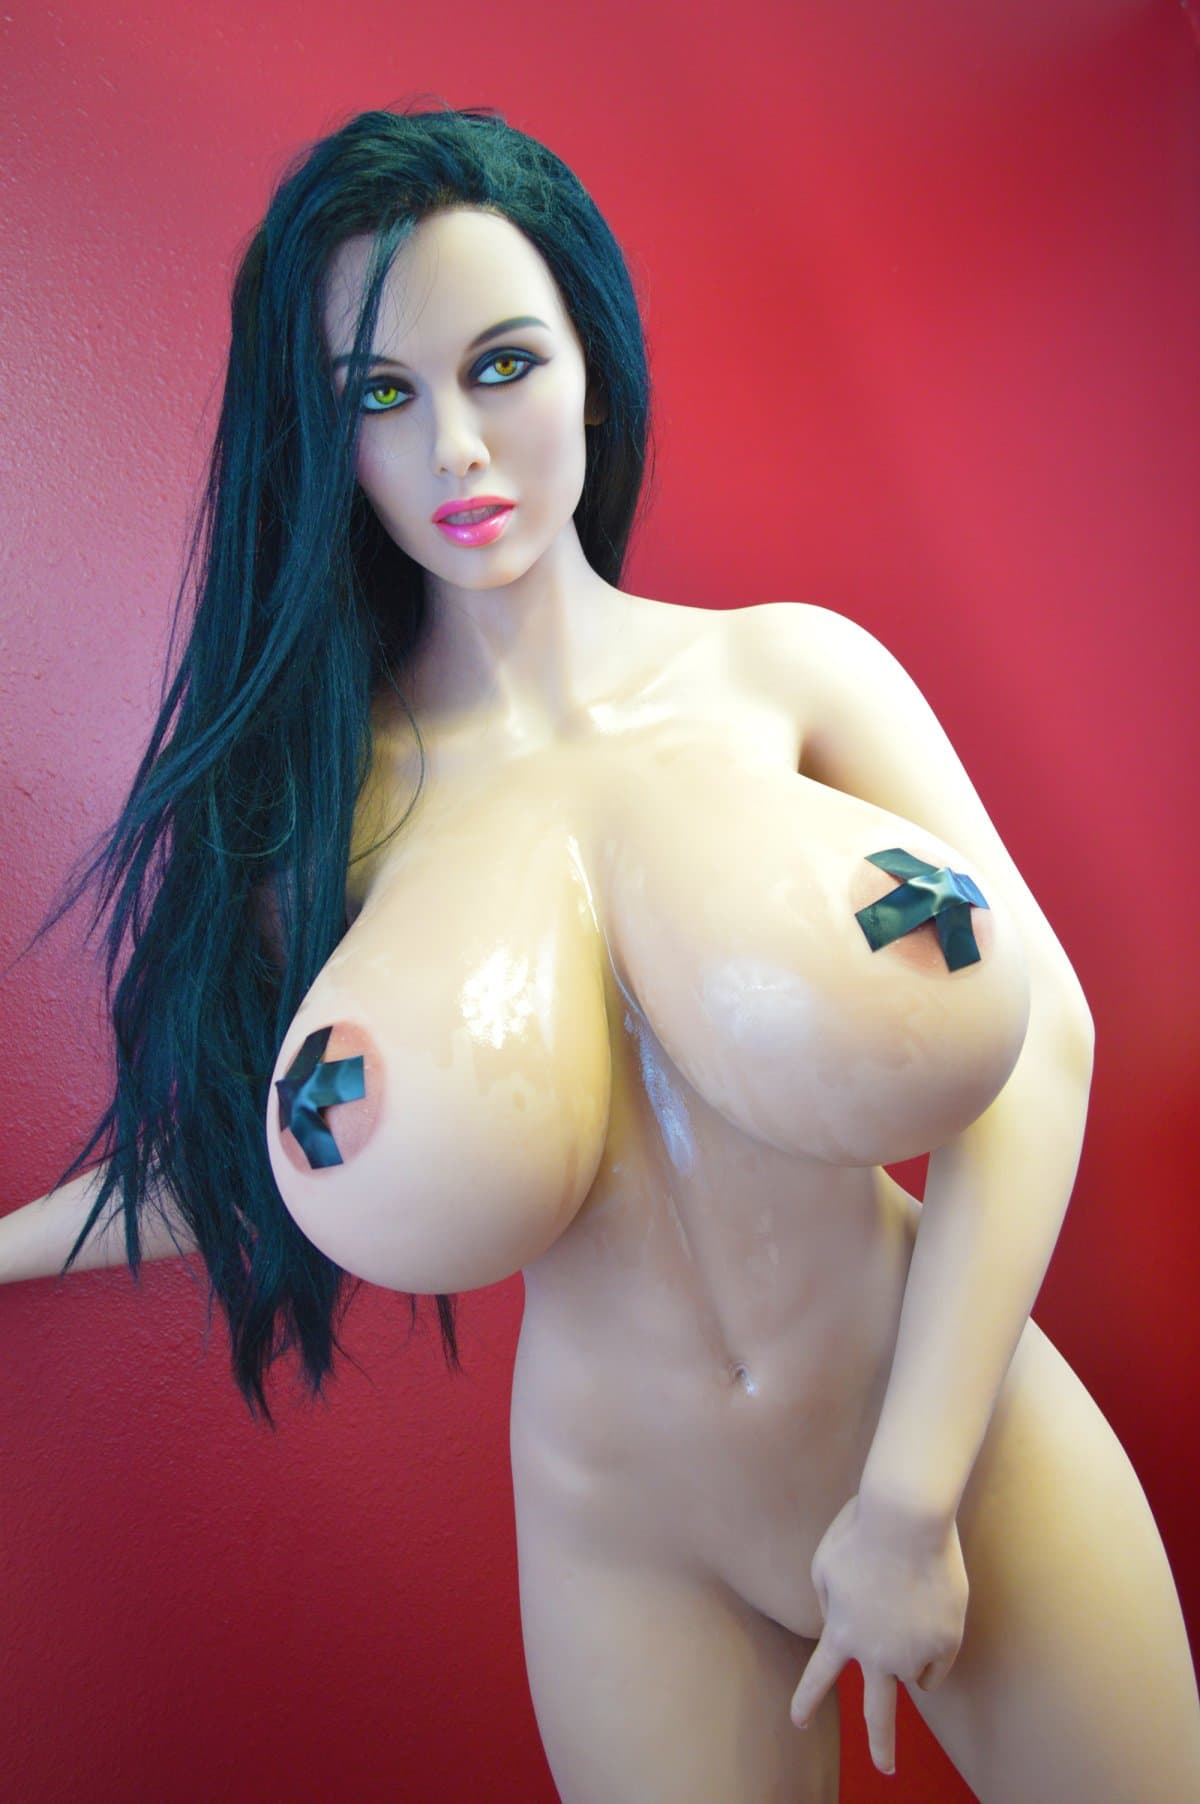 alley 170cm black hair giant massive tits athletic tpe wm sex doll(3)